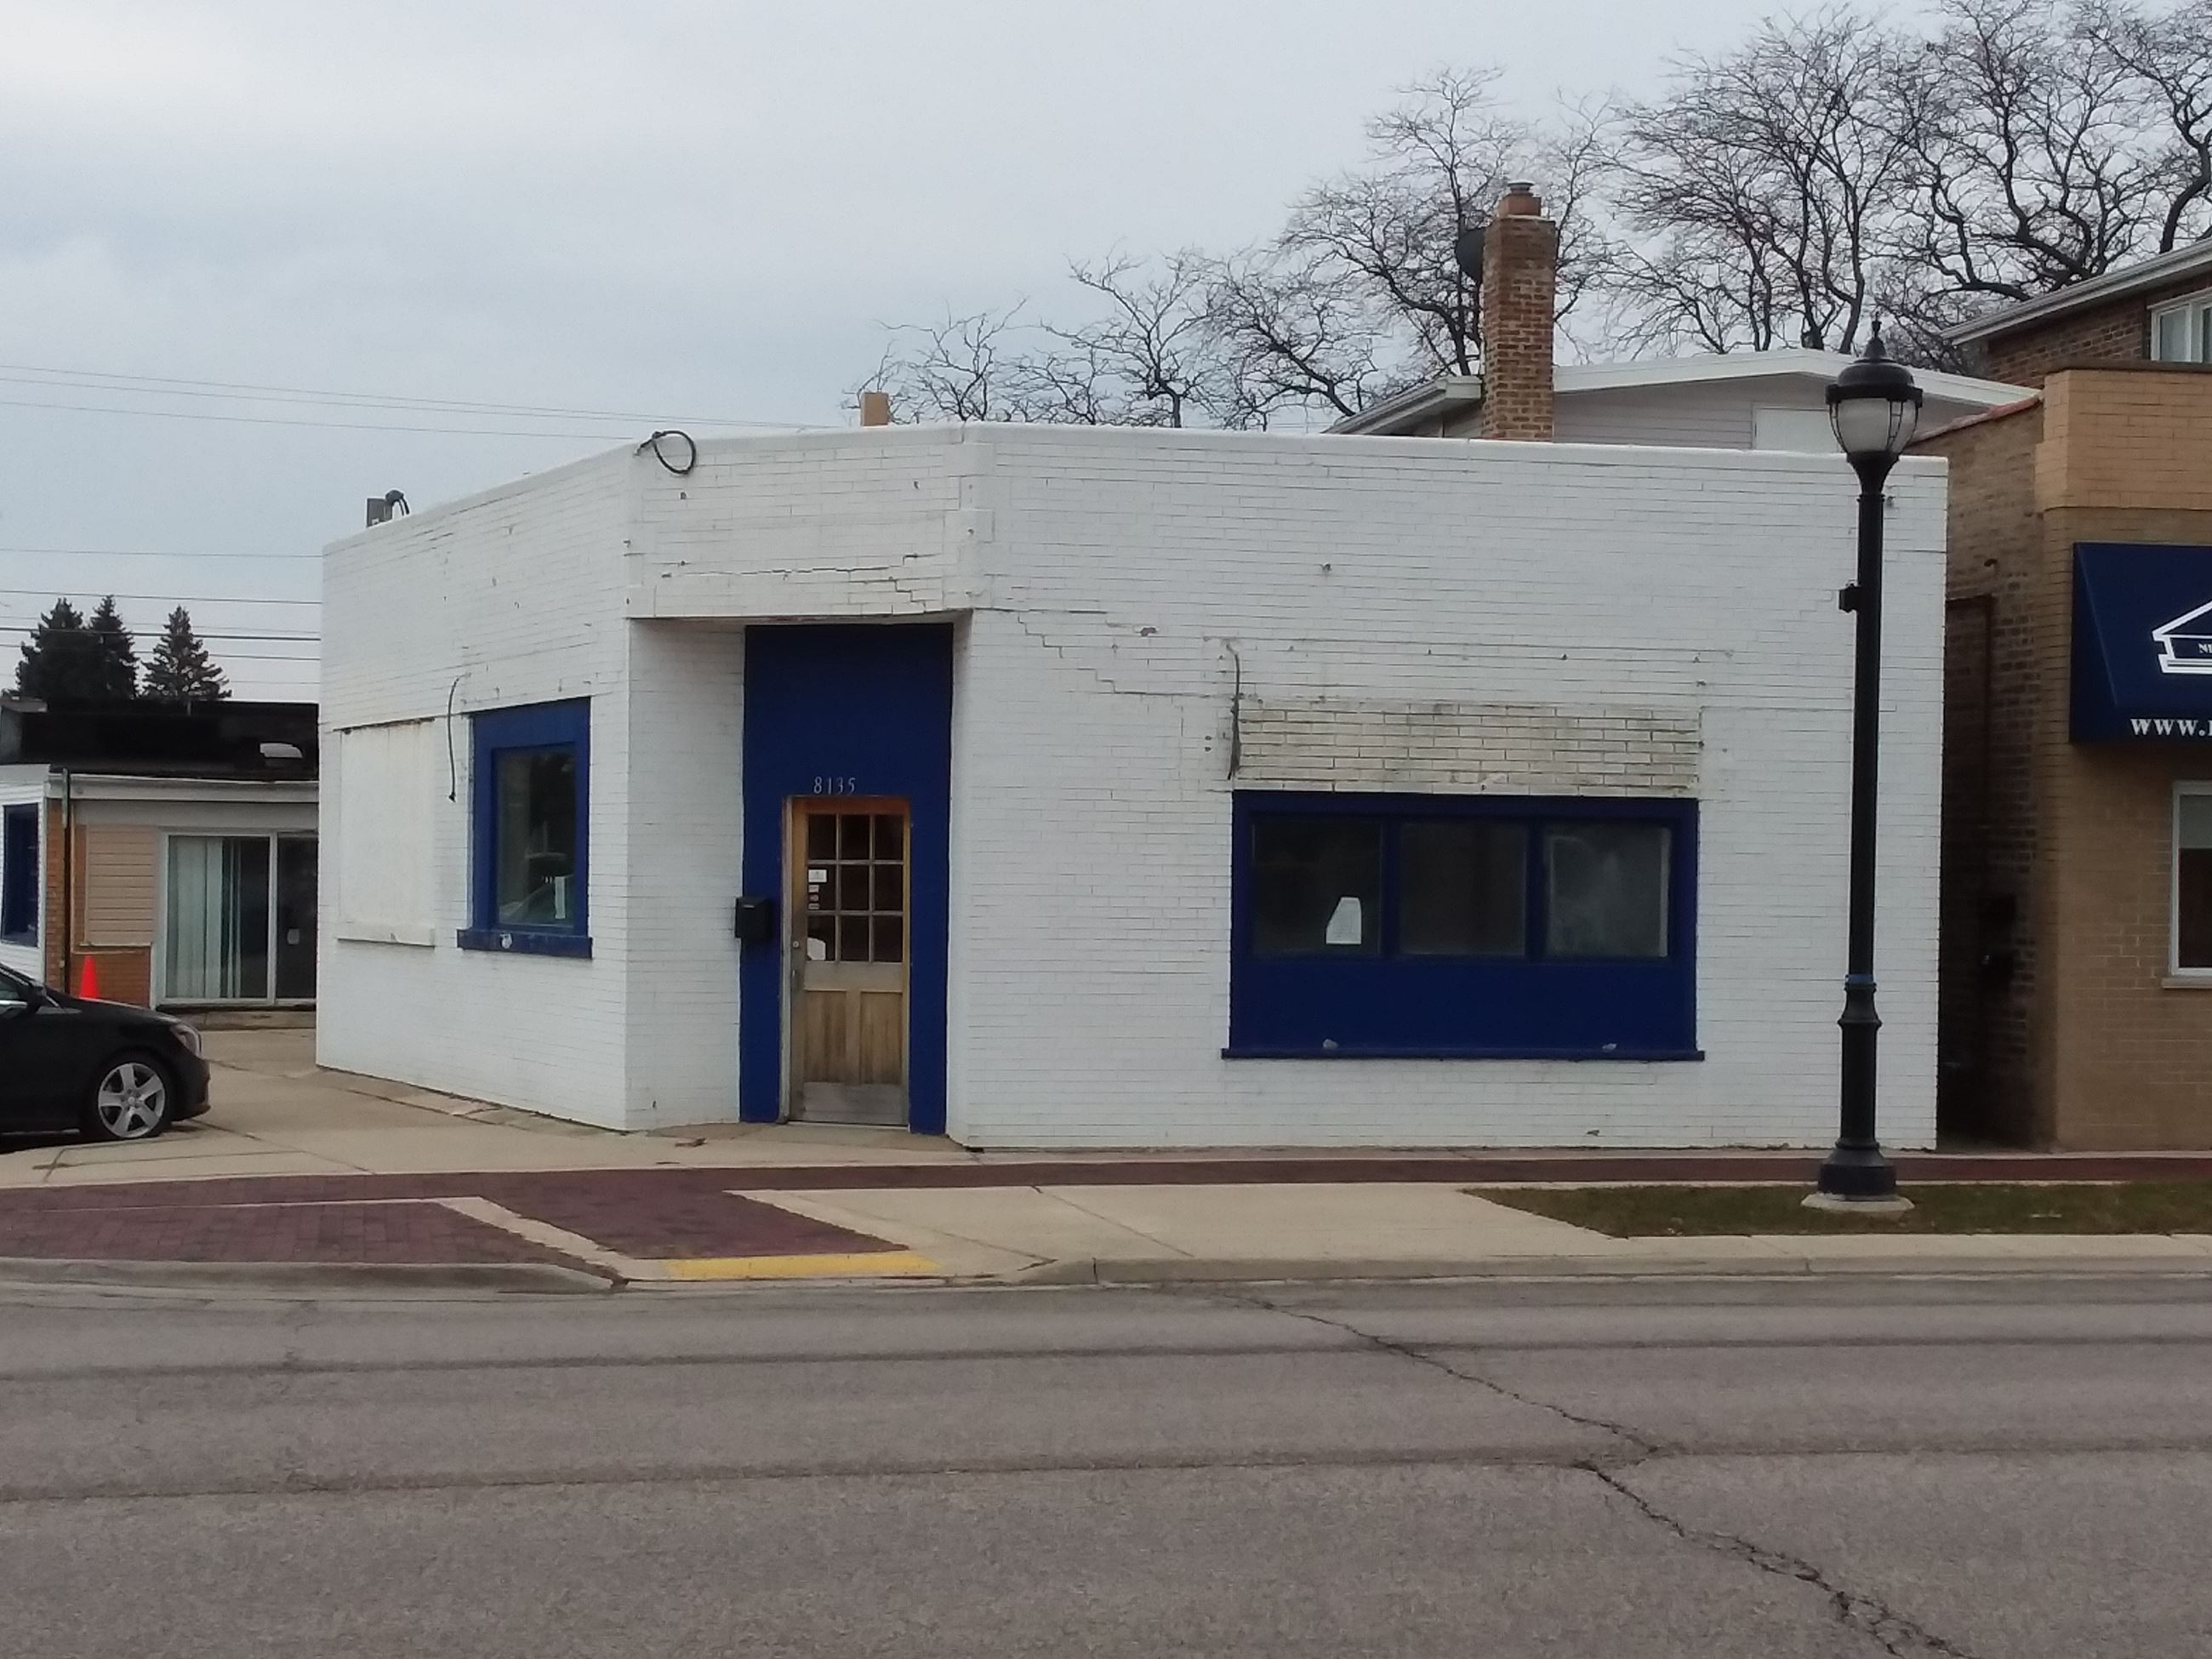 Exterior view of vacant white brick single-story storefront